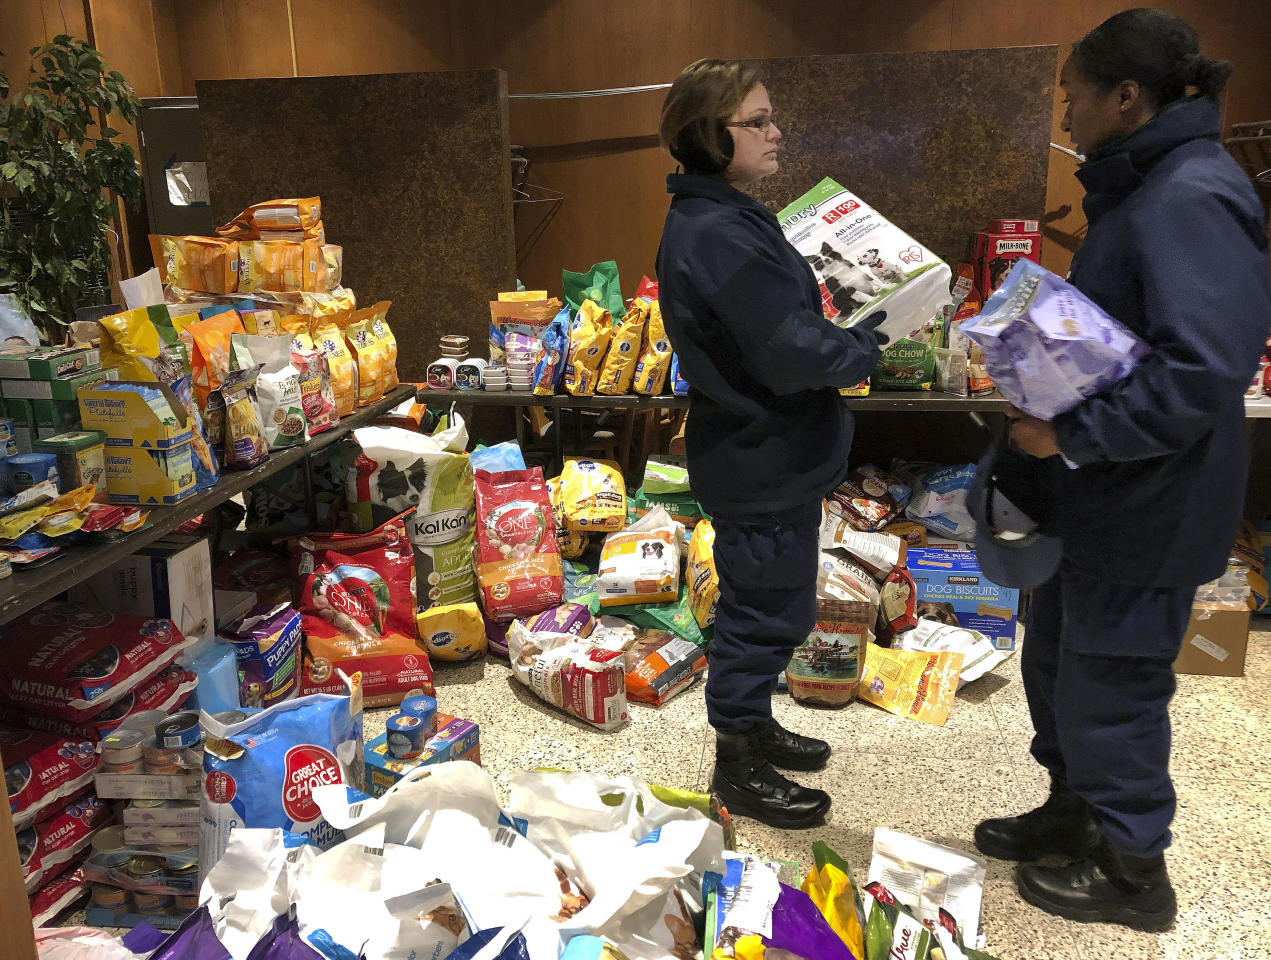 In this Thursday, Jan. 17, 2019 photo, members of the U.S. Coast Guard browse through bags of donated pet food at a pop-up pantry created by local Coast Guard-related advocacy groups to help the hundreds of civilian and non-civilian Coast Guard employees in New London, Conn., impacted by the partial federal shutdown. The outpouring from the community has been so great, the pantry has separate sections, including pet supplies, personal care and gluten-free food items. (AP Photo/Susan Haigh)